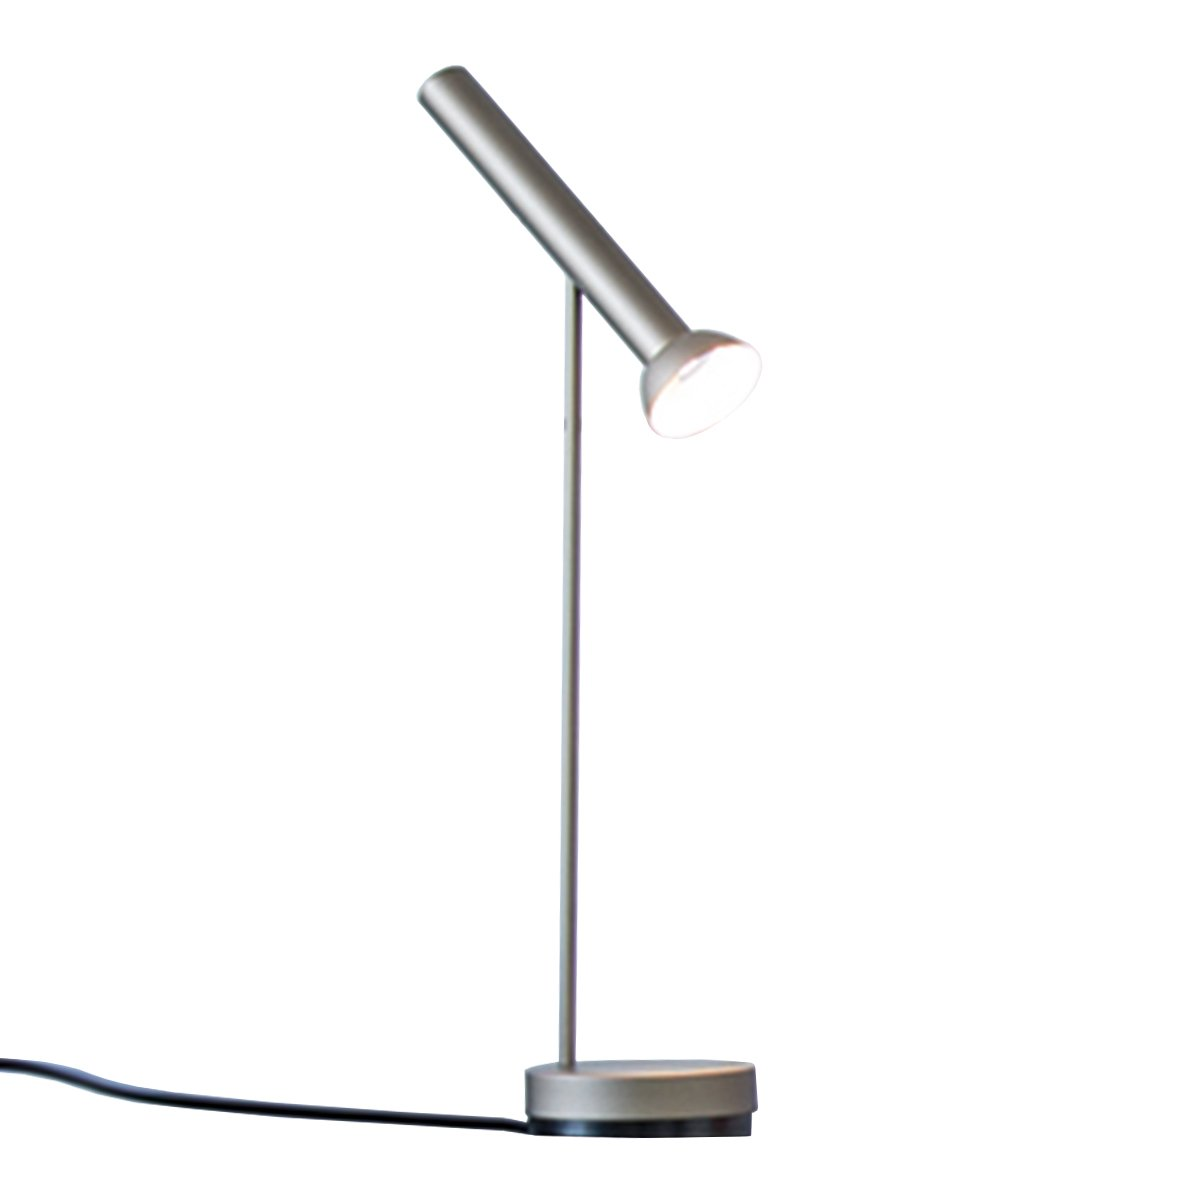 Baltensweiler TOPOLED Bureaulamp